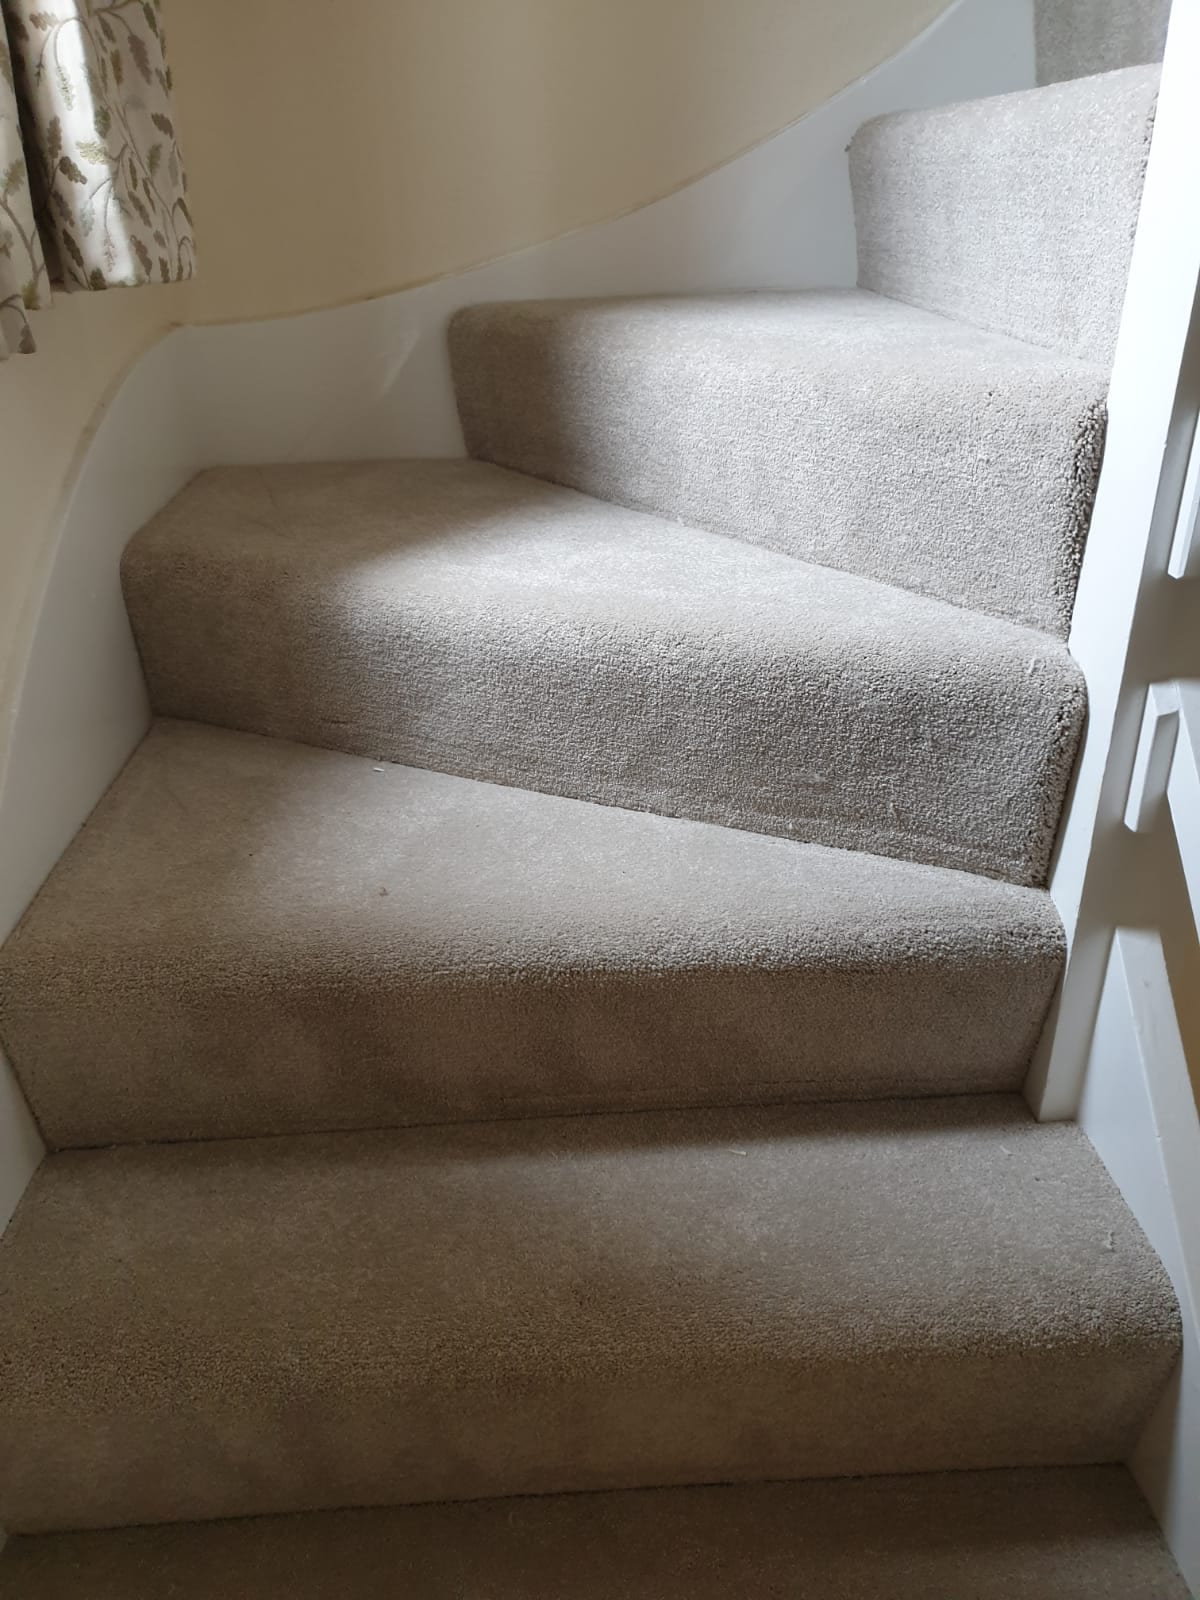 Cormar Carpets Primo Grande Pearl River Carpet Installed In Hitchin Herts Carpets